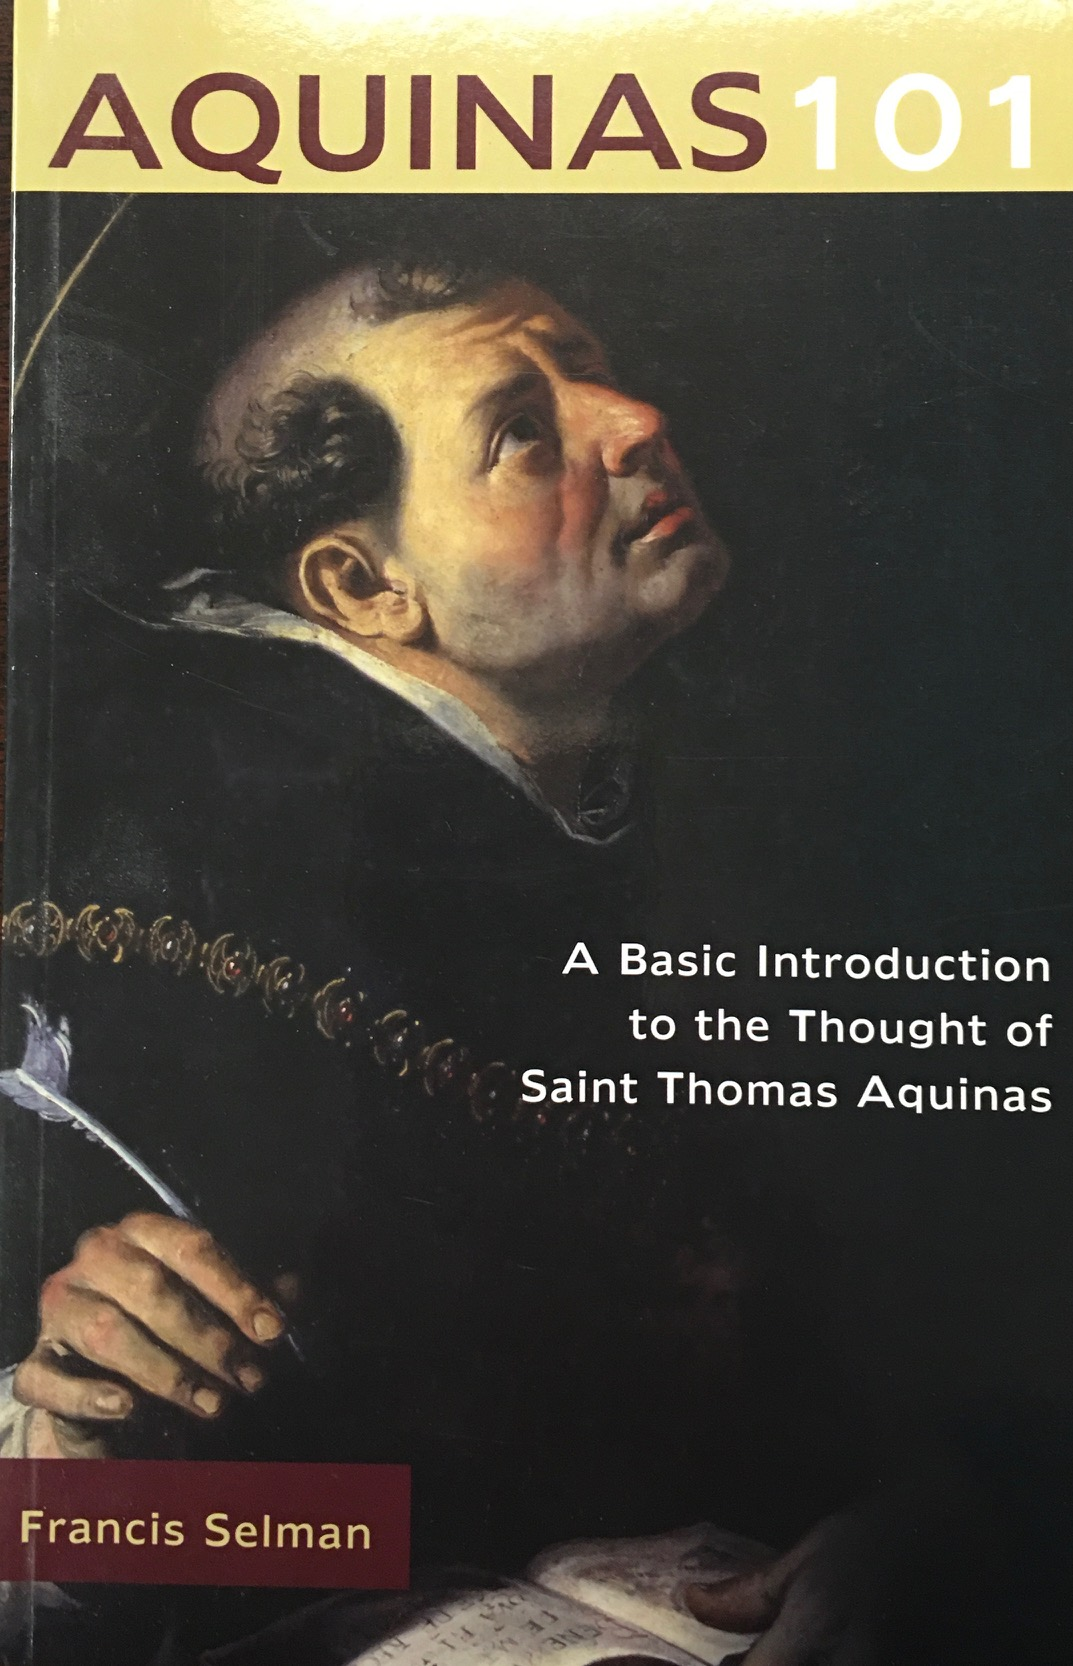 Image for Aquinas 101: A Basic Introduction to the Thought of Saint Thomas Aquinas